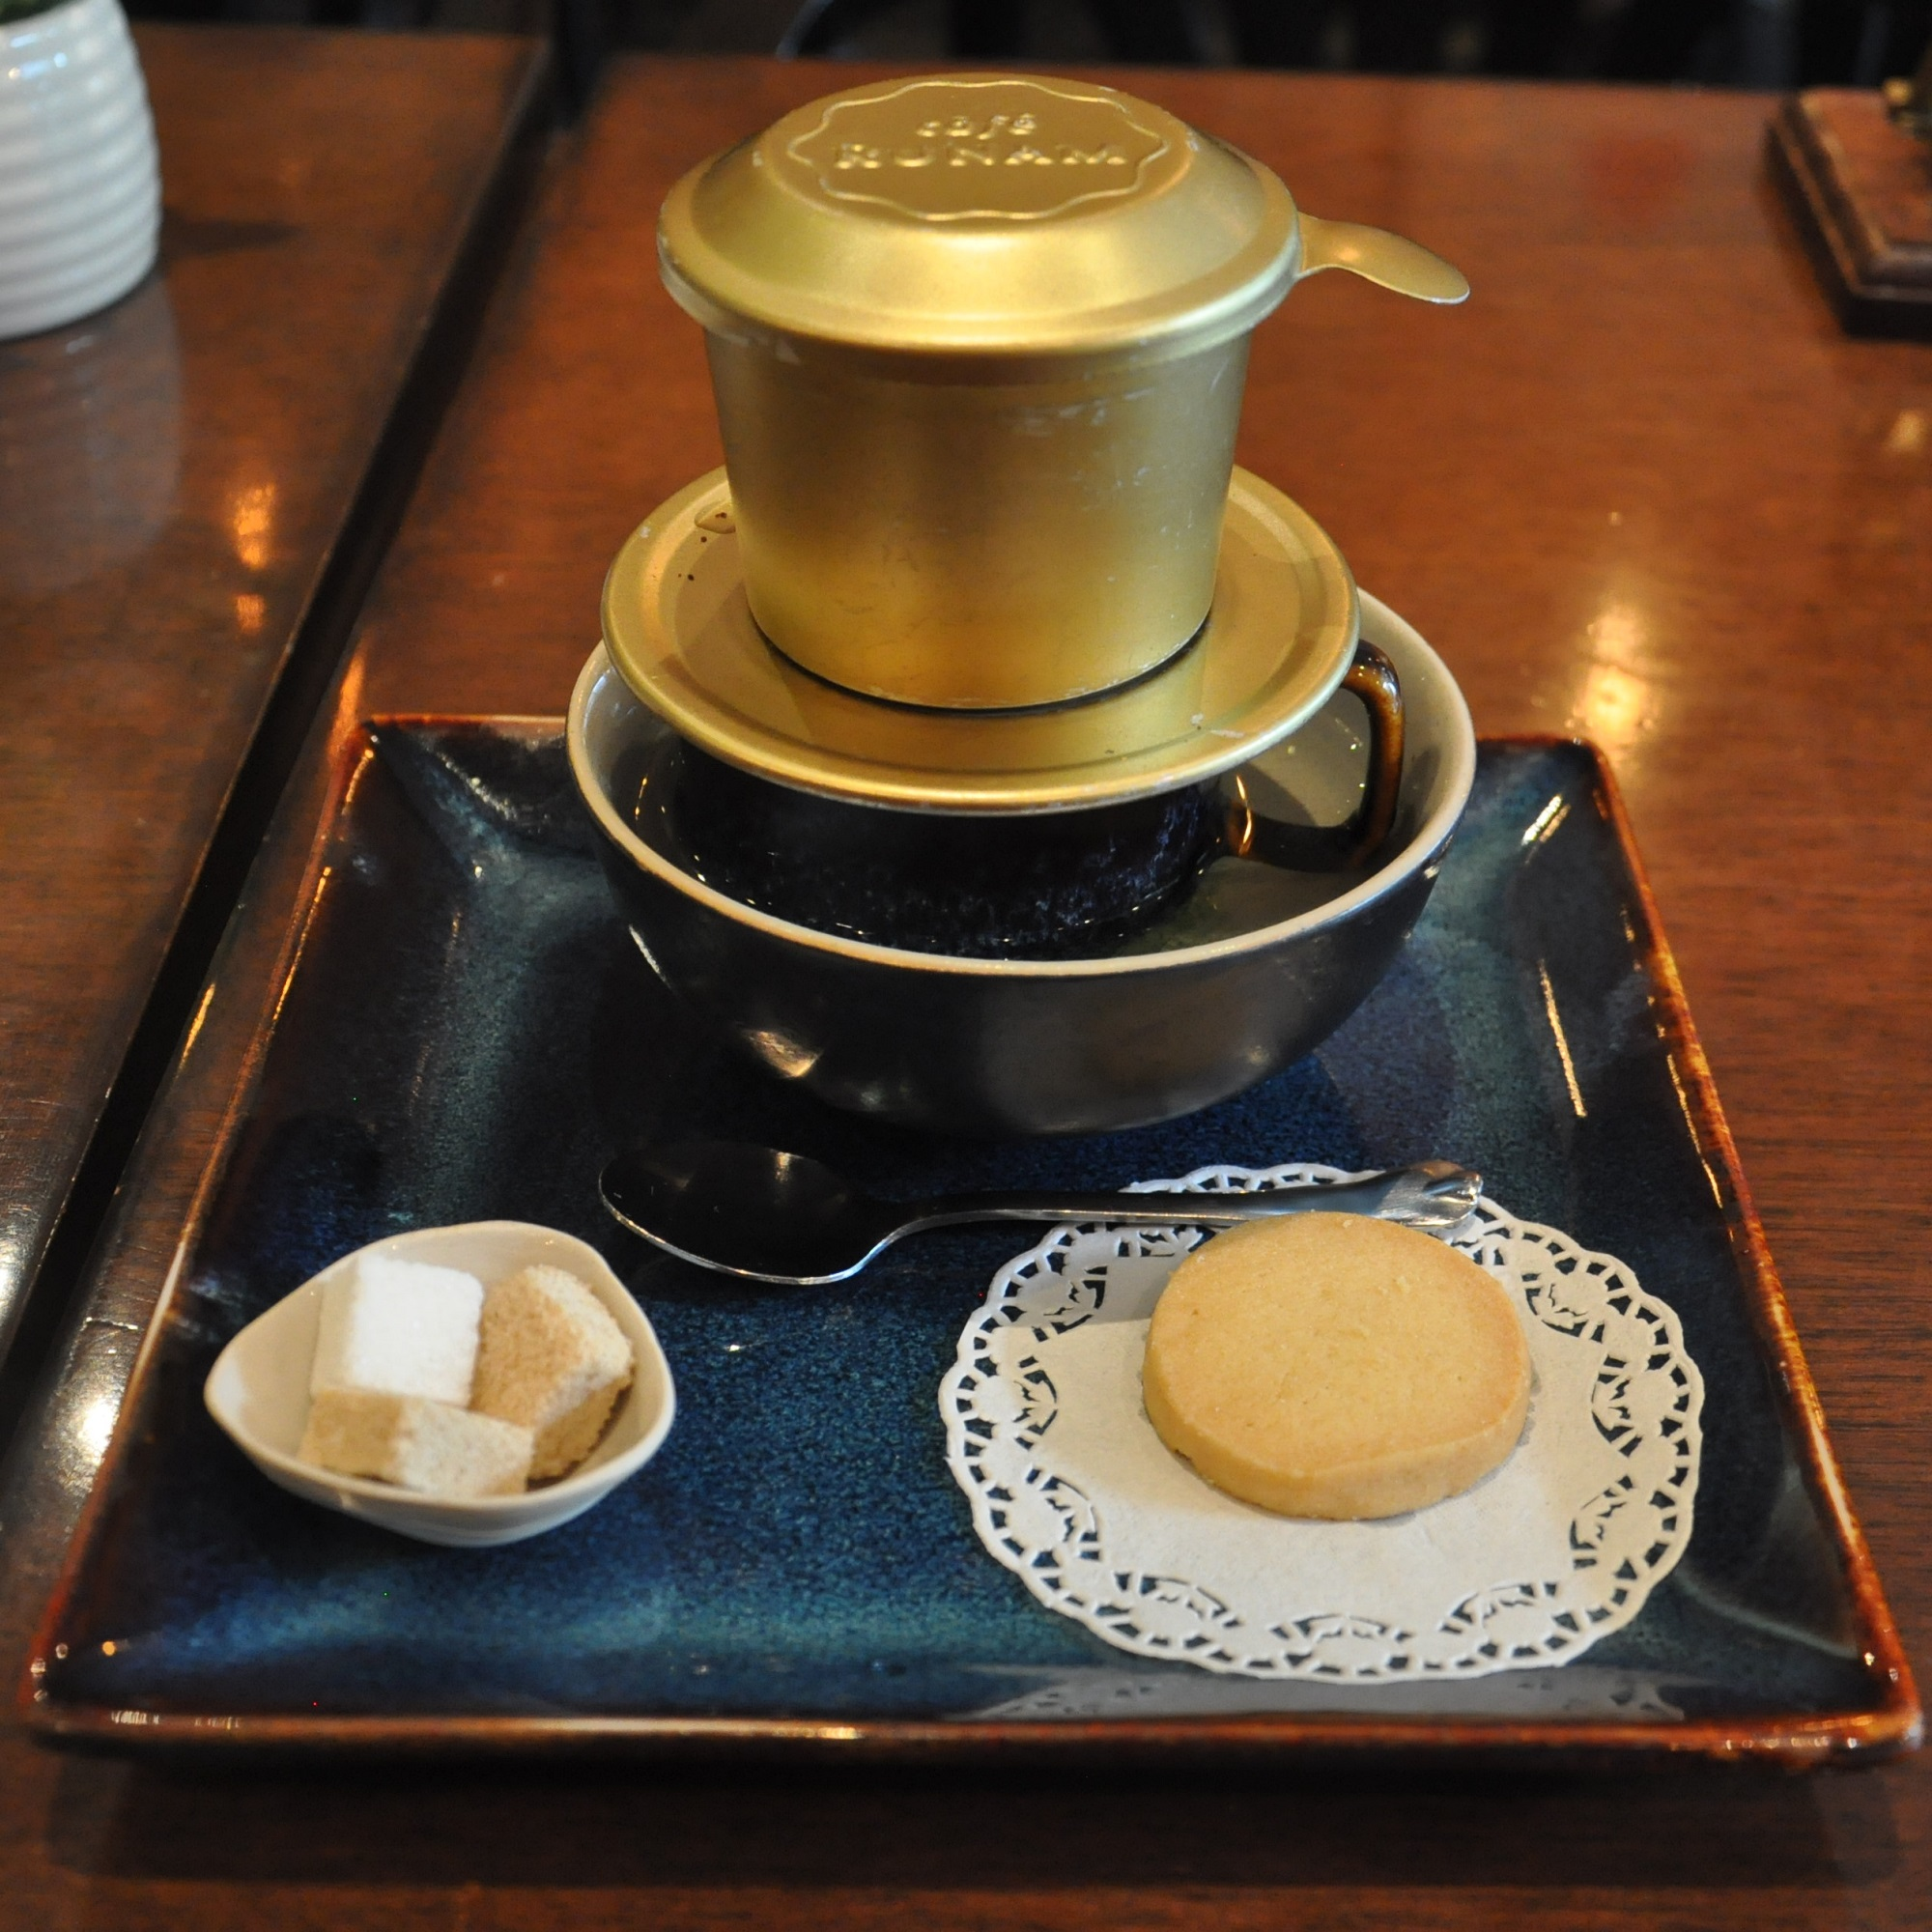 My coffee at RuNam Bistro in Hanoi, made with a traditional cup-top filter and beautifully-presented on a ceramic tray. Note the bowl of hot water the cup is standing in, which keeps the coffee warm.